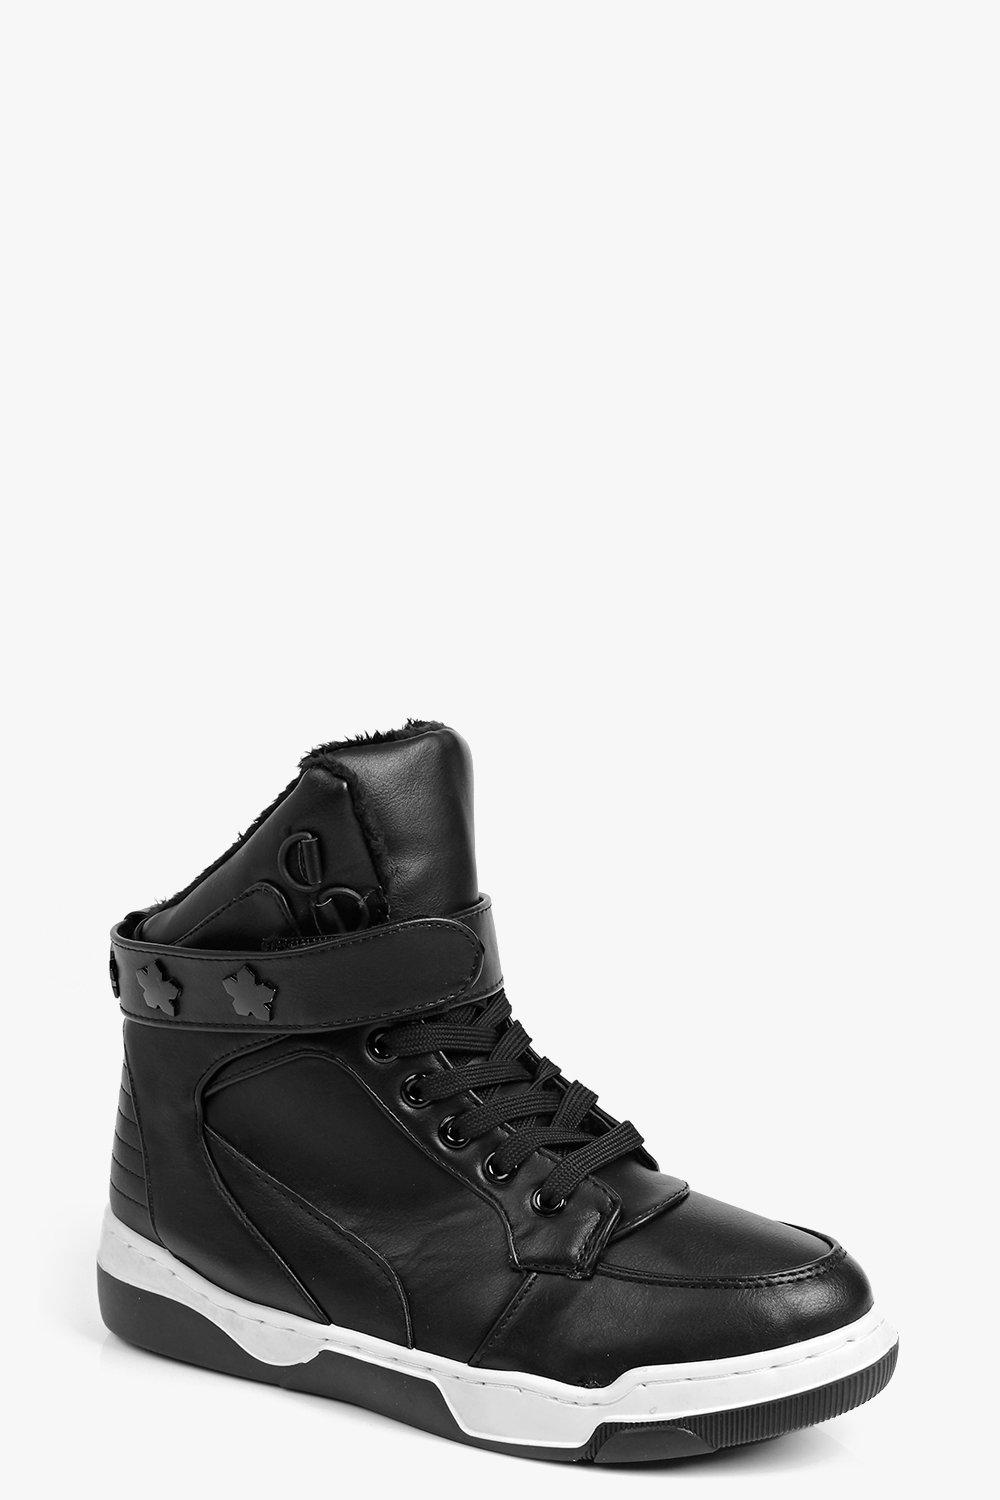 Emma Chunky Strap Detail High Top